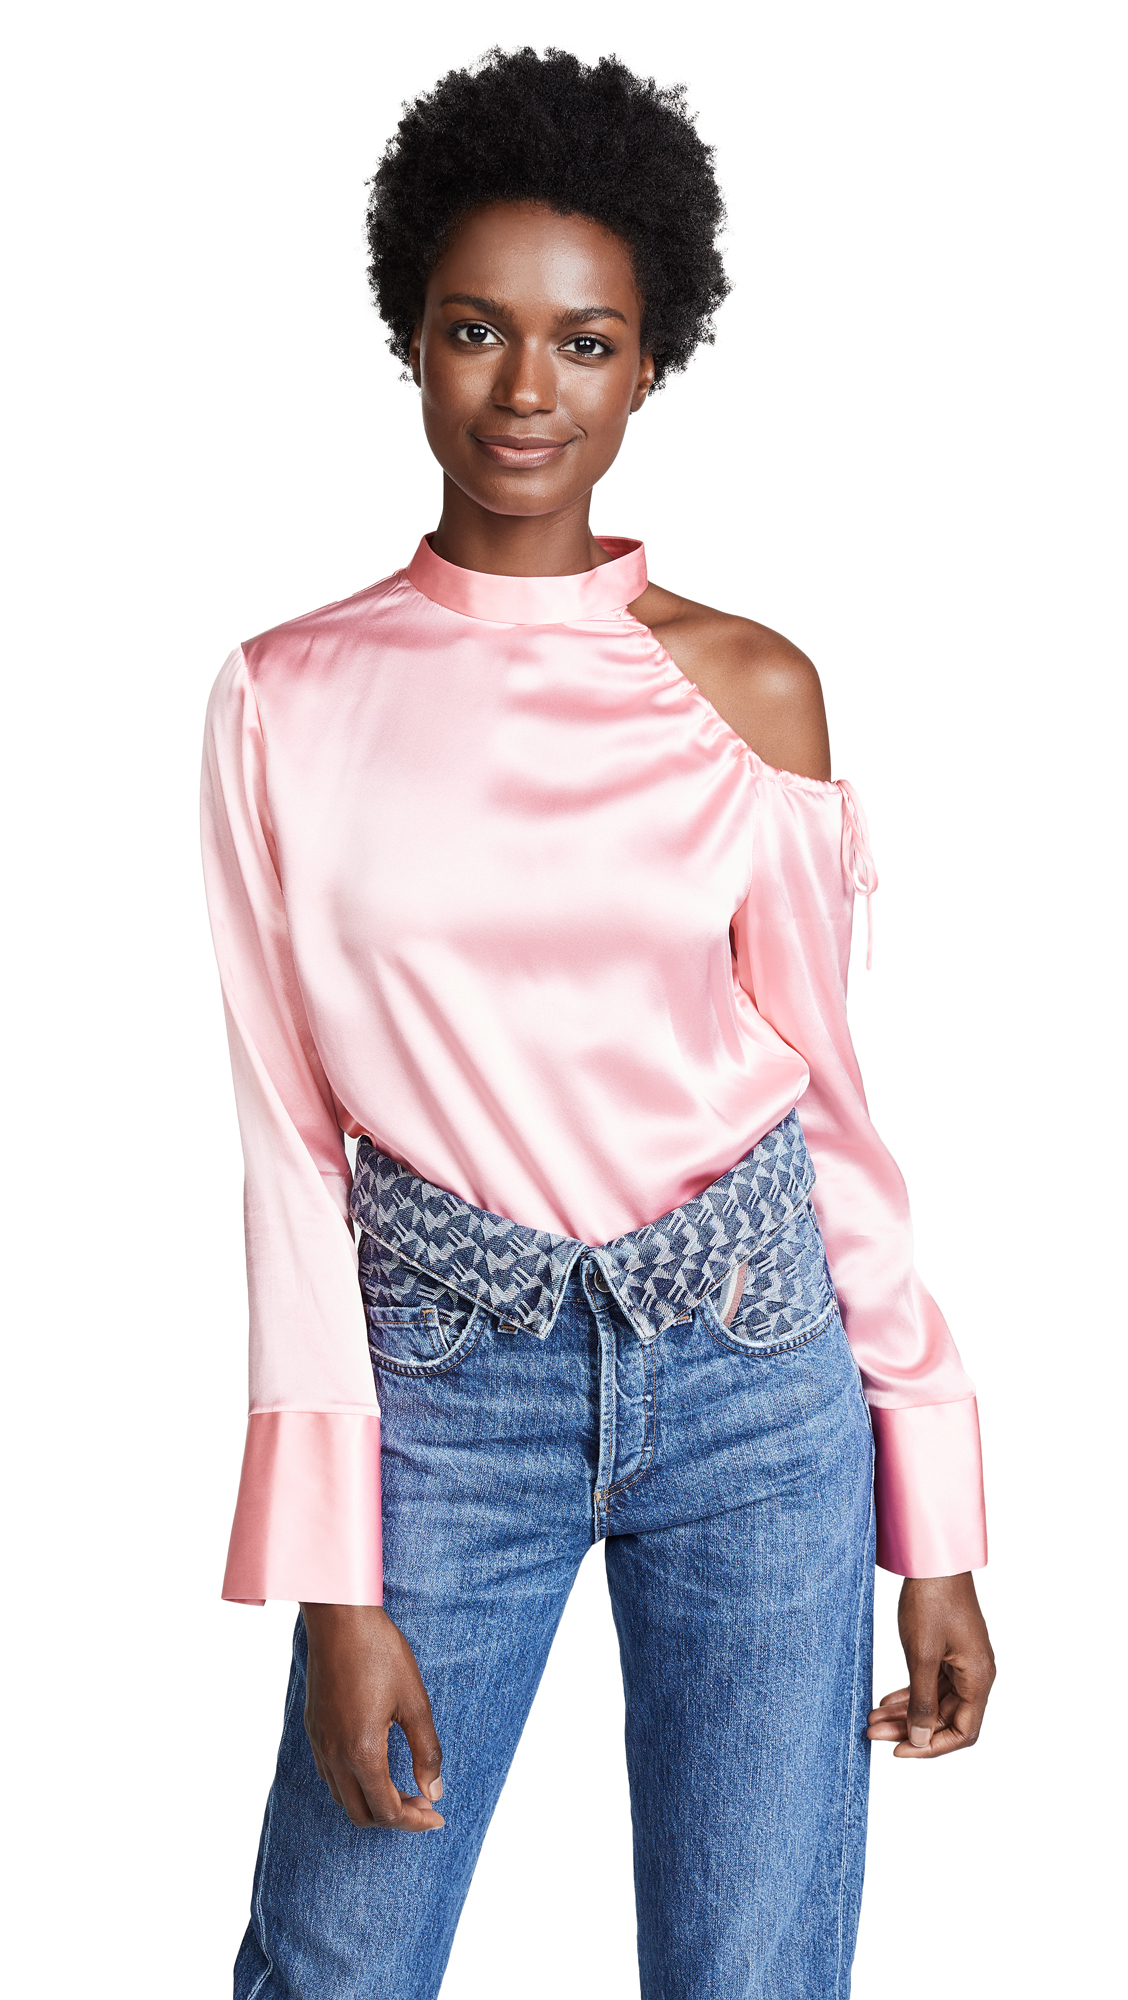 EDITION10 Cold Shoulder Blouse in Blushing Bride